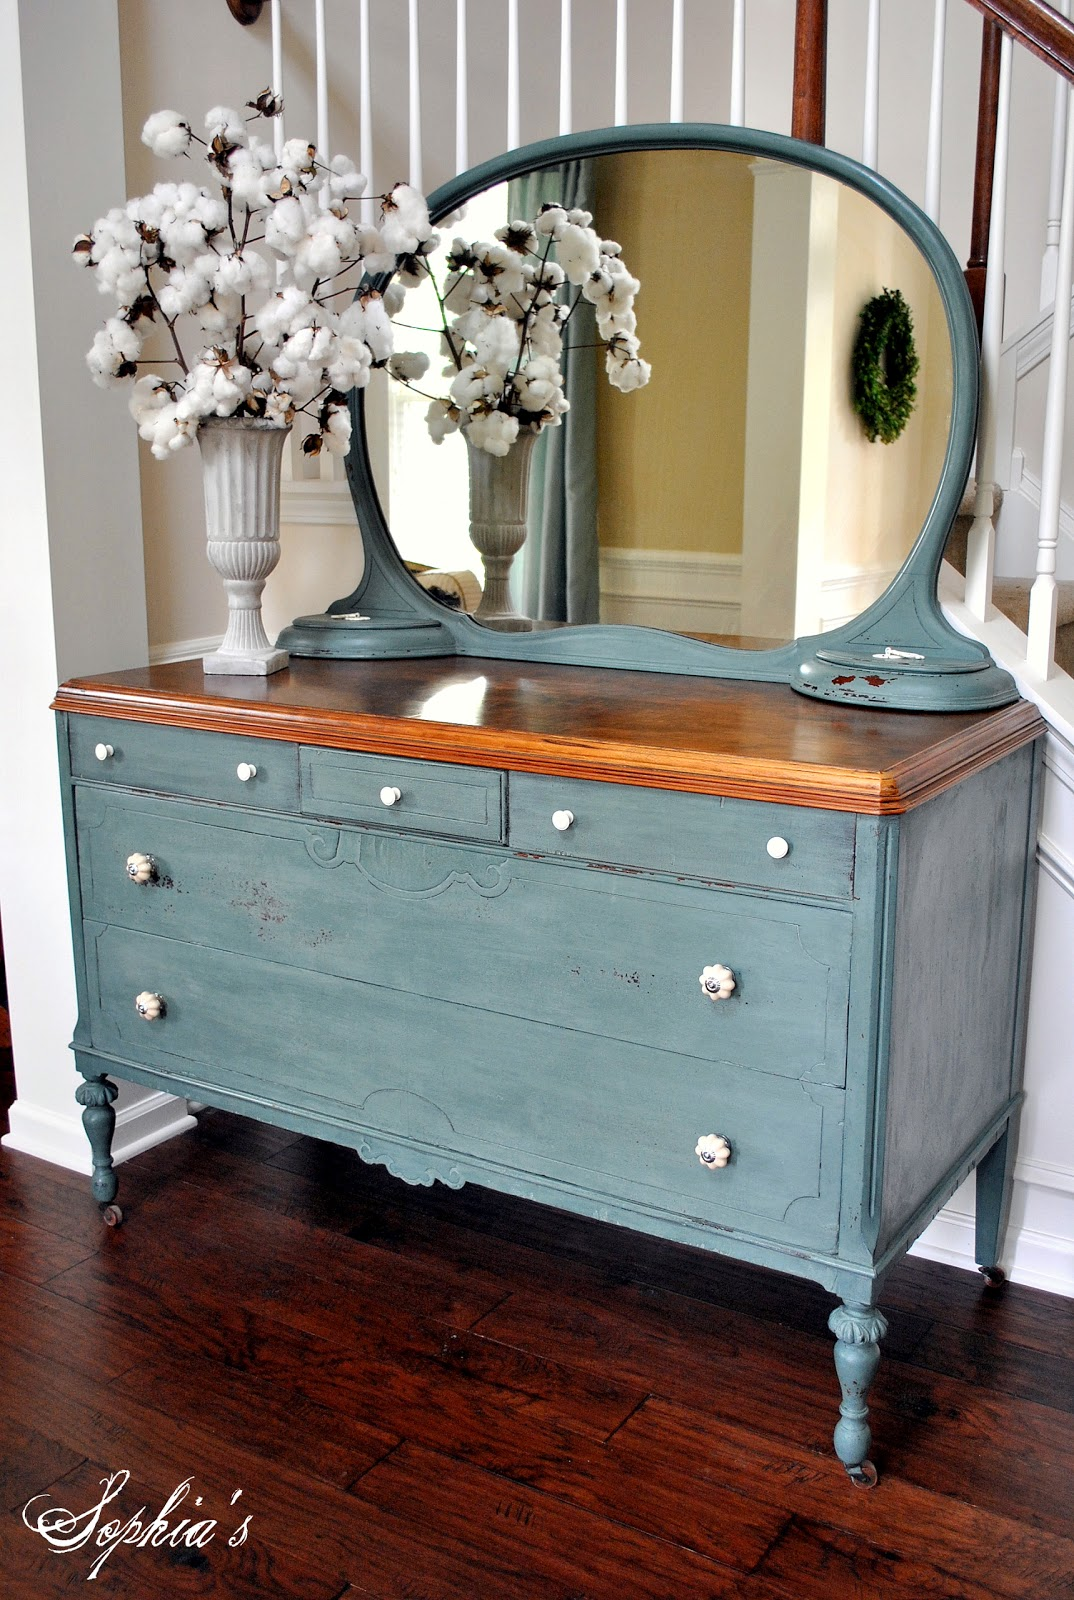 Charmant When I Was Visiting My Local Woodcraft Store About A Month Ago, I Thought  Iu0027d Pick Up Some Milk Paint. I Didnu0027t Have Any Specific Piece Of Furniture  I ...